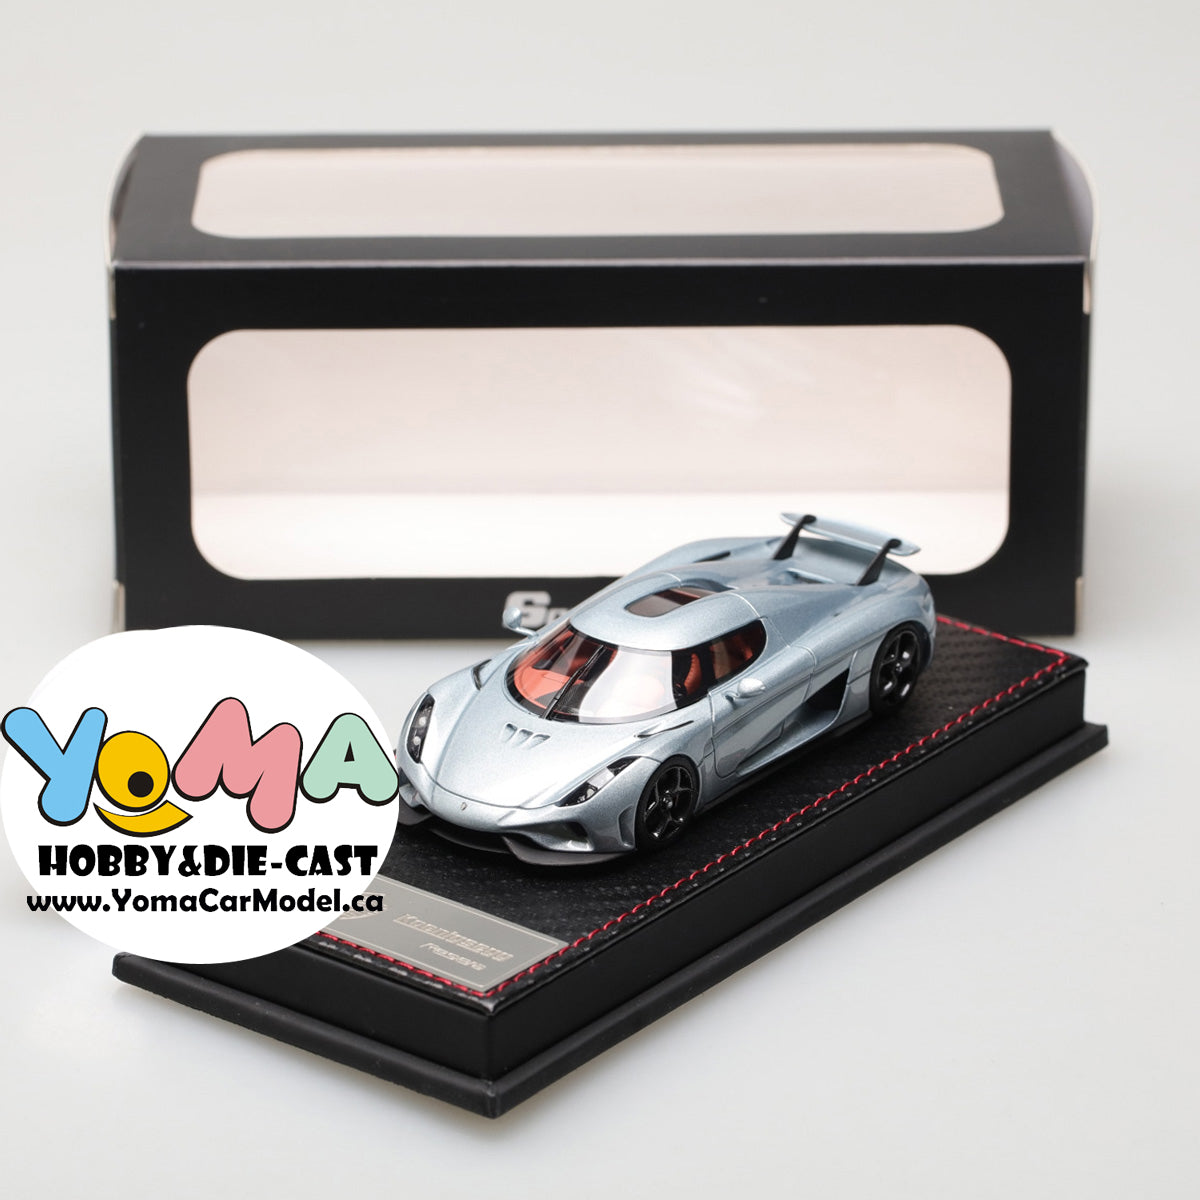 Frontiart SophiArt 1/43 Koenigsegg Regera Horizon blue Resin Model Car SA001-76